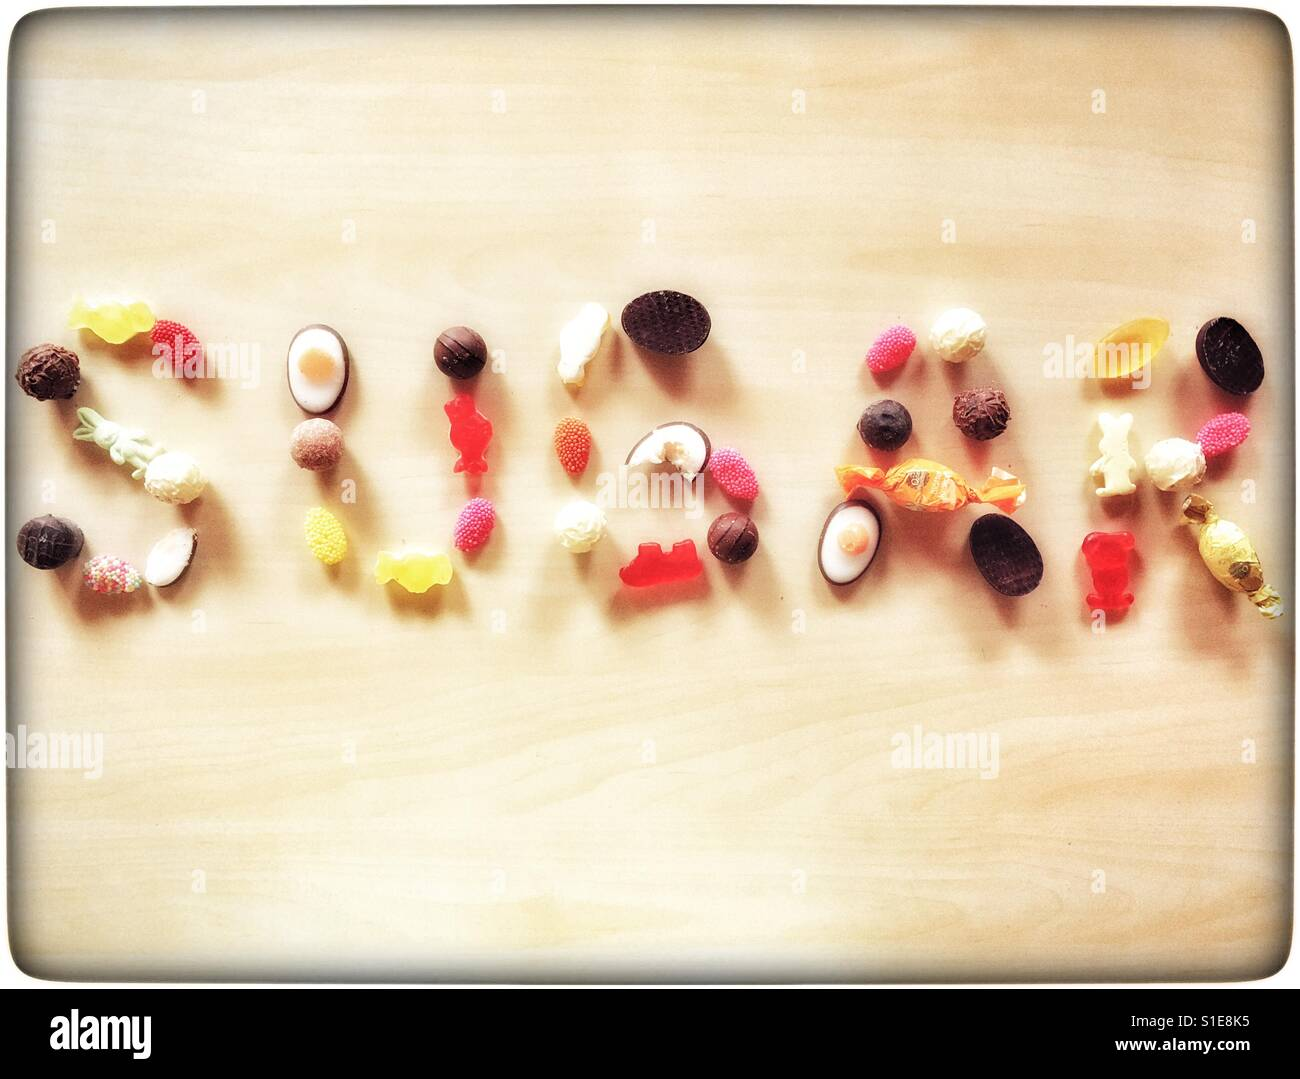 The word ' Sugar ' written with sweets and bonbons on a wooden background - Stock Image